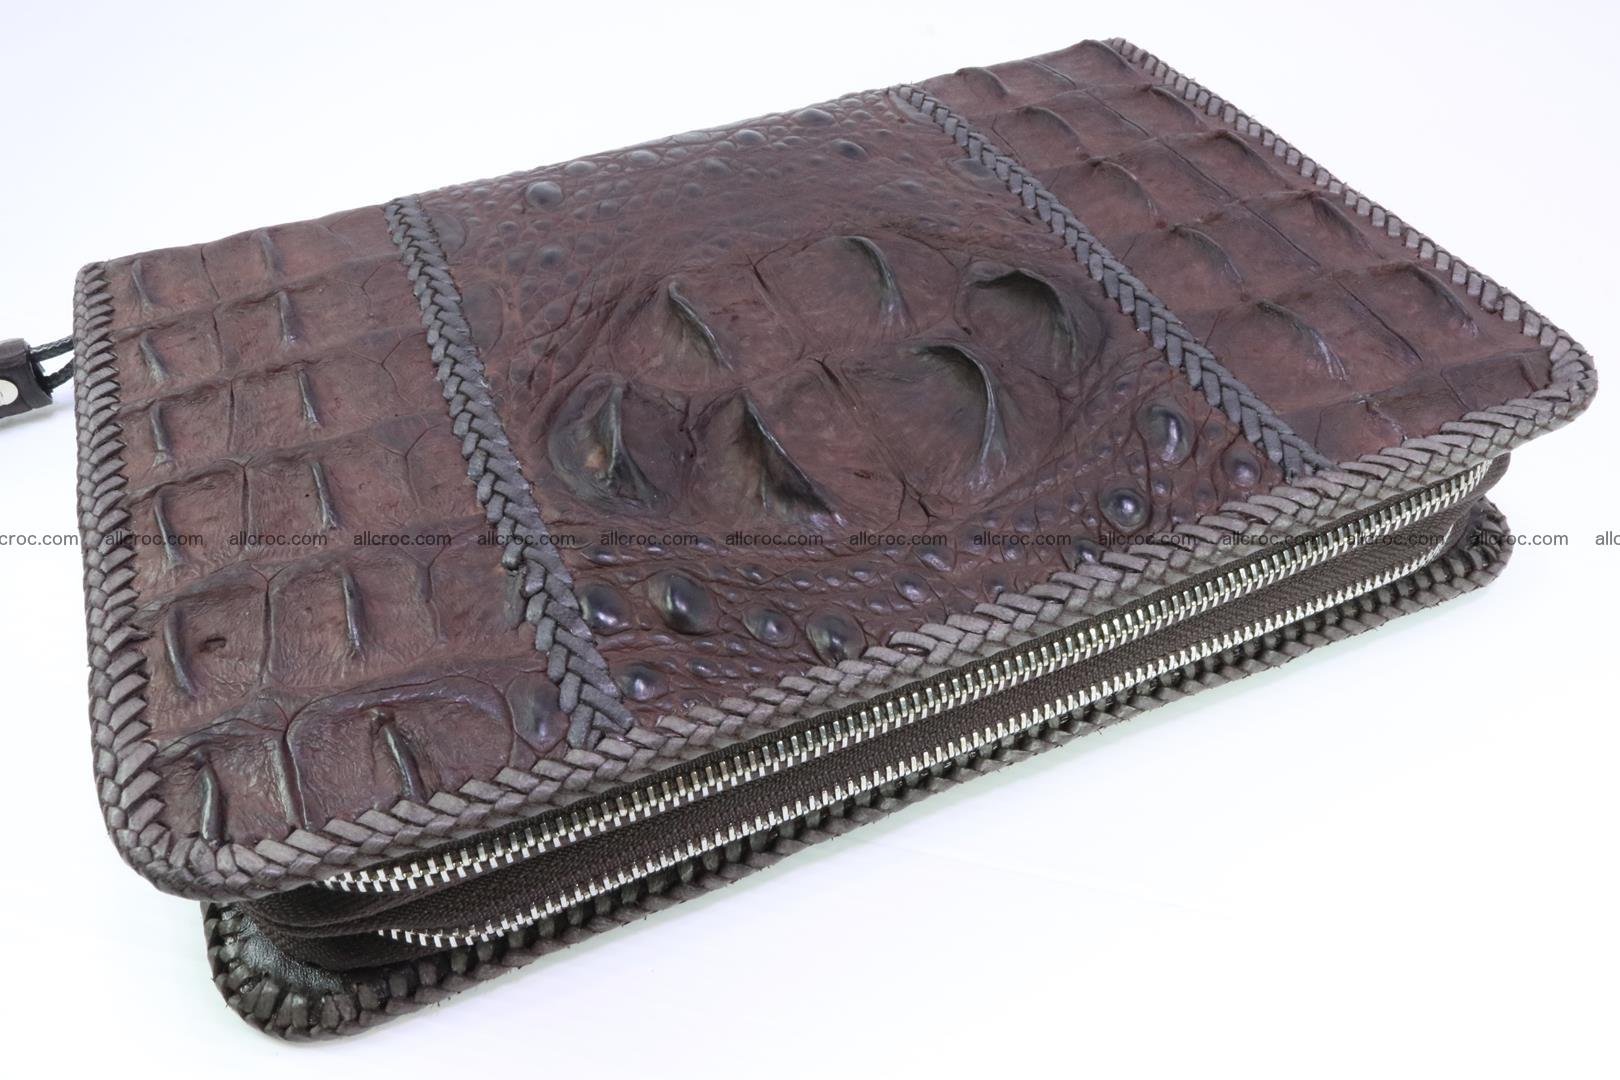 Crocodile clutch for men from genuine hornback crocodile leather 163 Foto 0